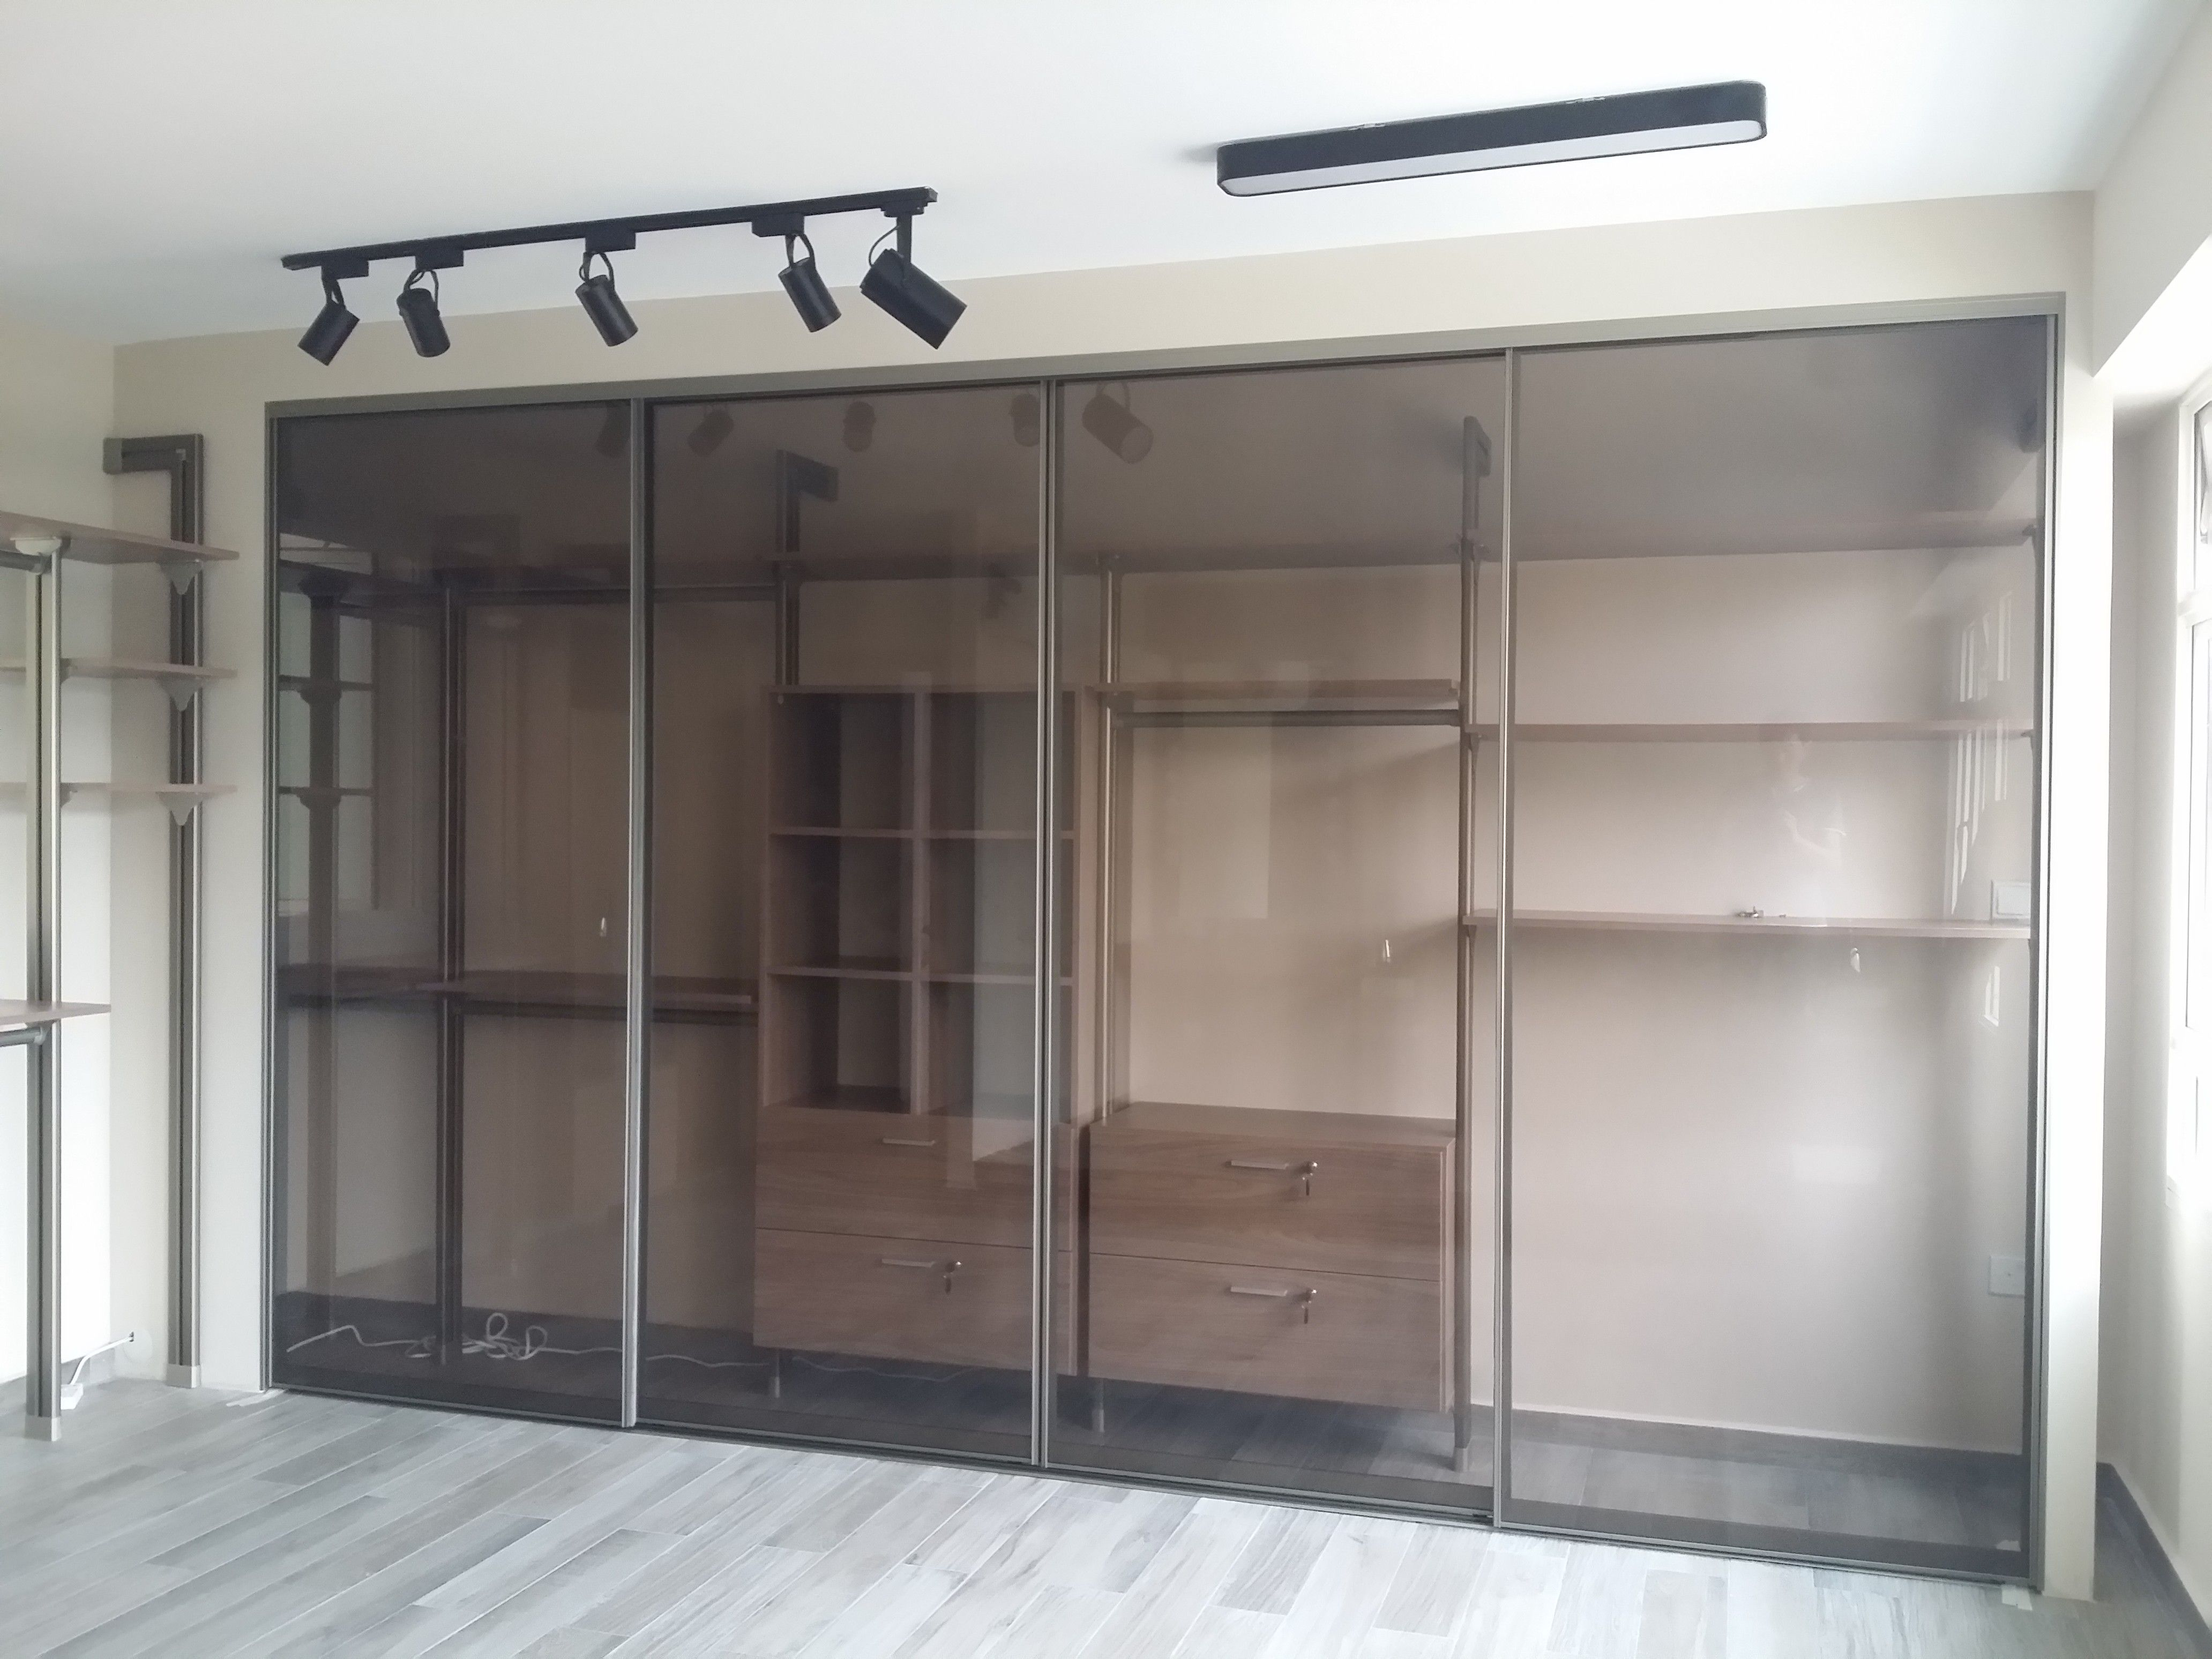 Modular Pole System Wardrobe 10a Boon Tiong Road In 2019